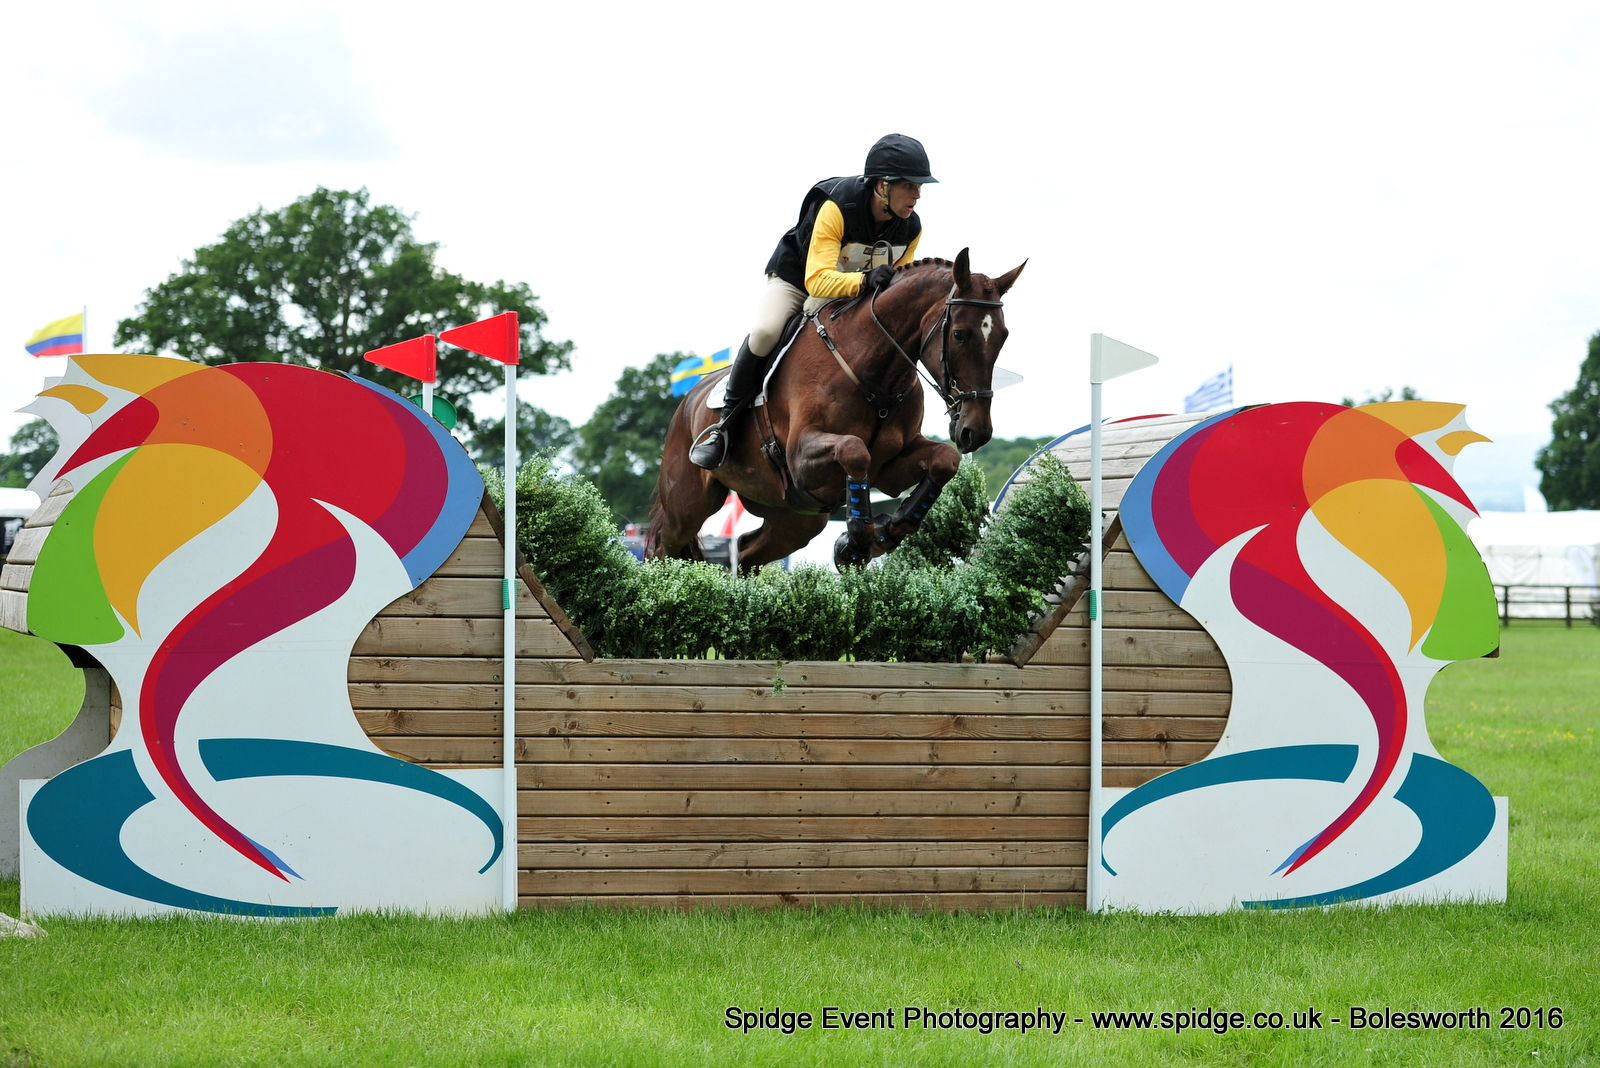 BL1 8293 - Success for Nick Gauntlett at Bolesworth International